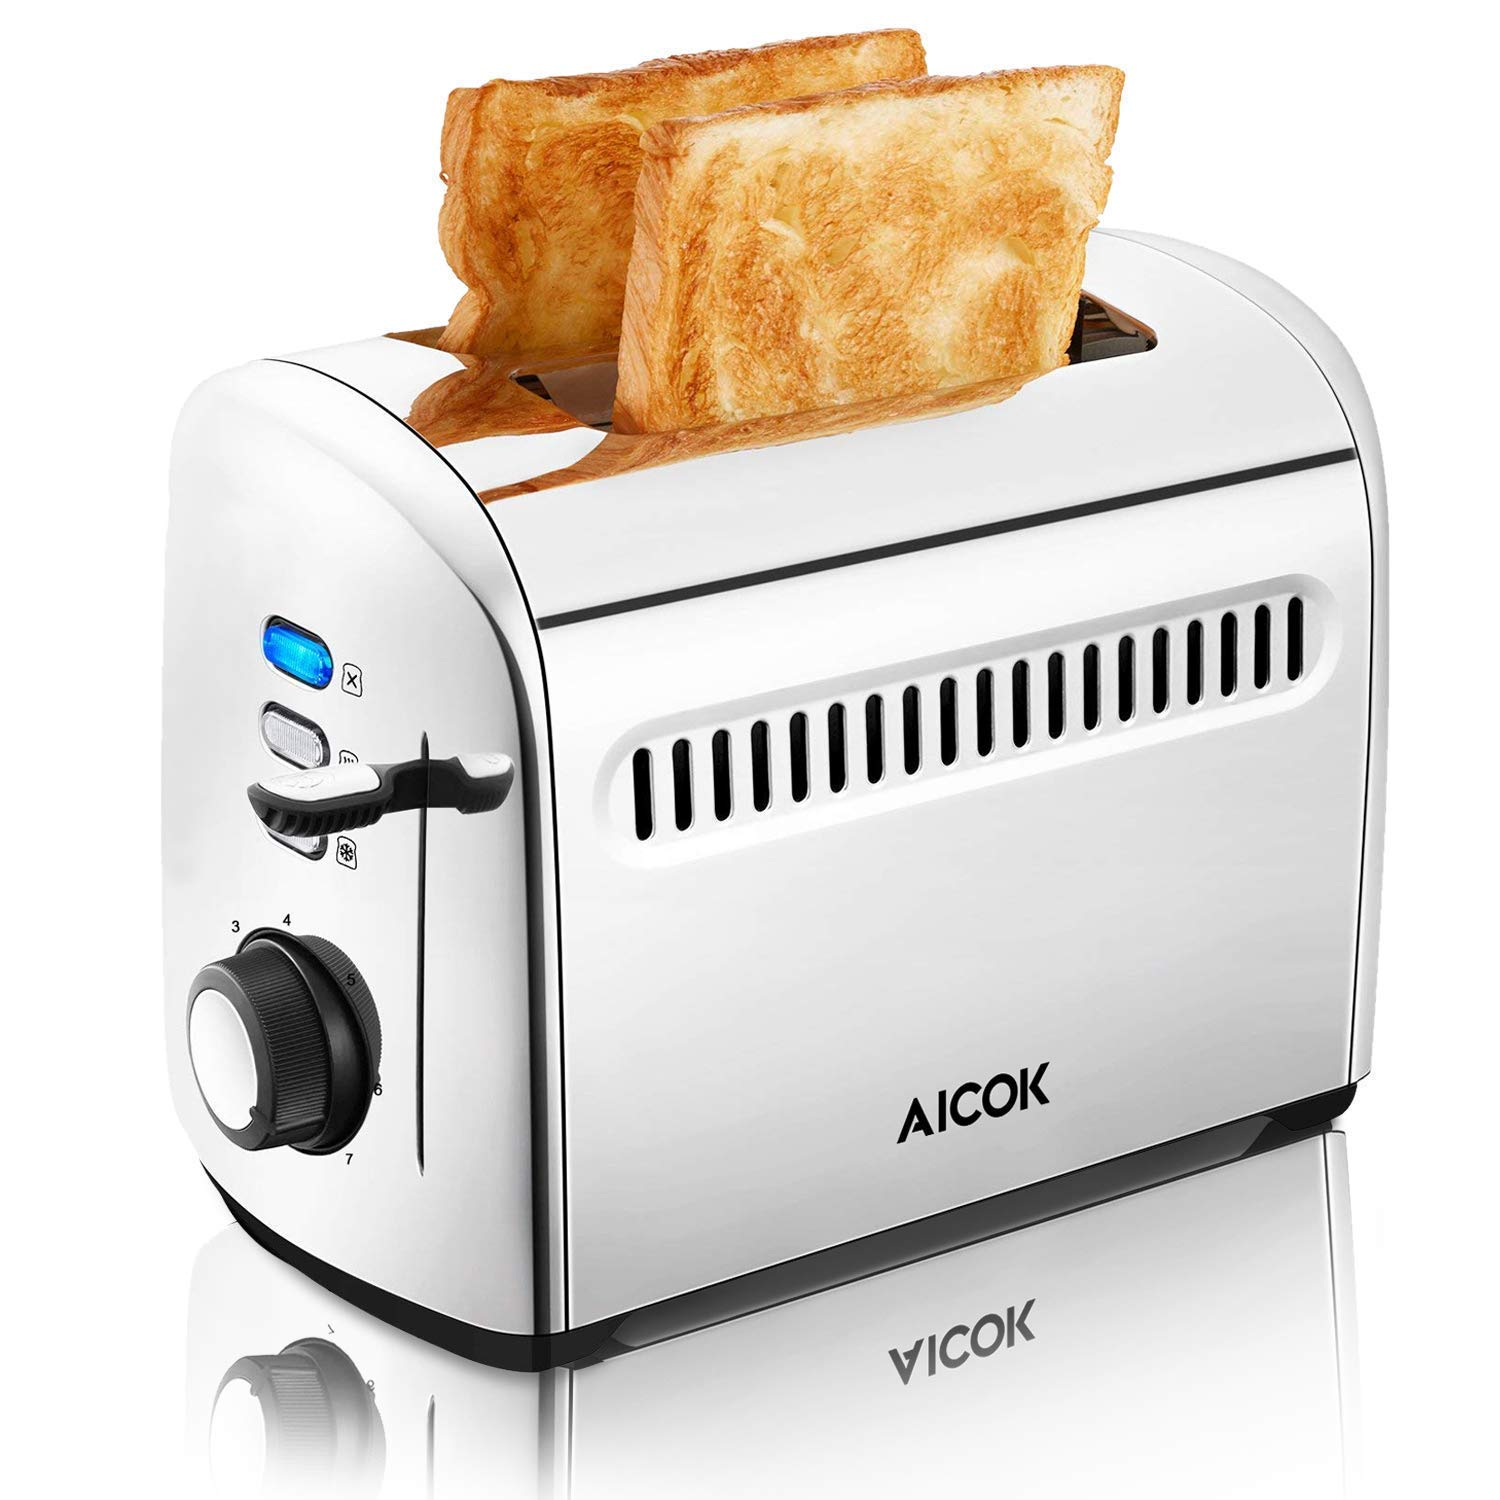 Toaster, Aicok 2 Slice Stainless Steel Toaster with Bagel, Defrost, Cancel Function, Extra-Wide Slots, 7 Browning Control, 850W, Silver